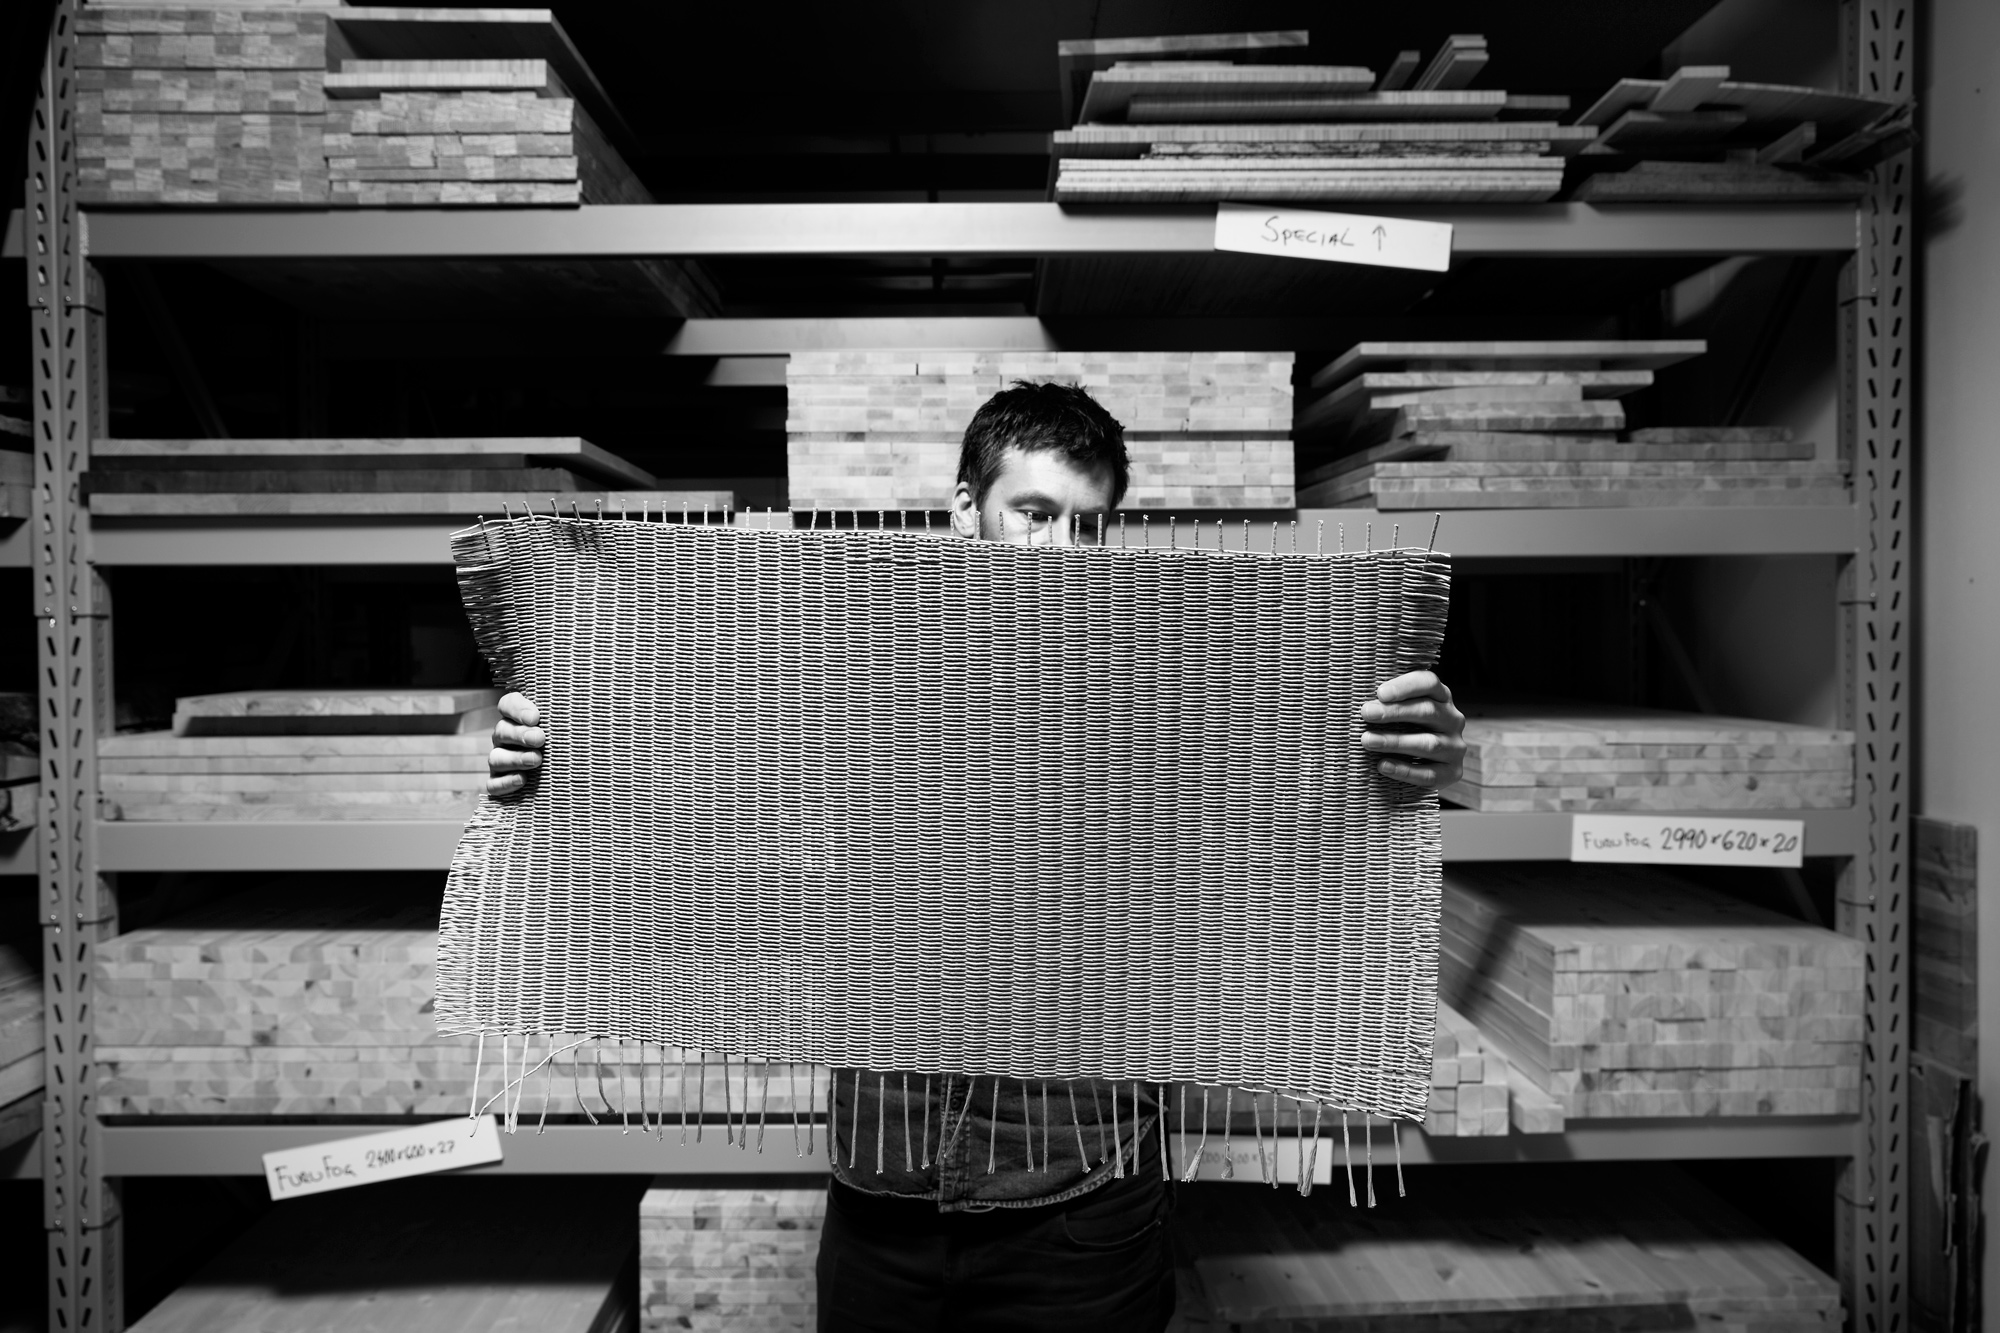 A man holding a sheet of woven material.